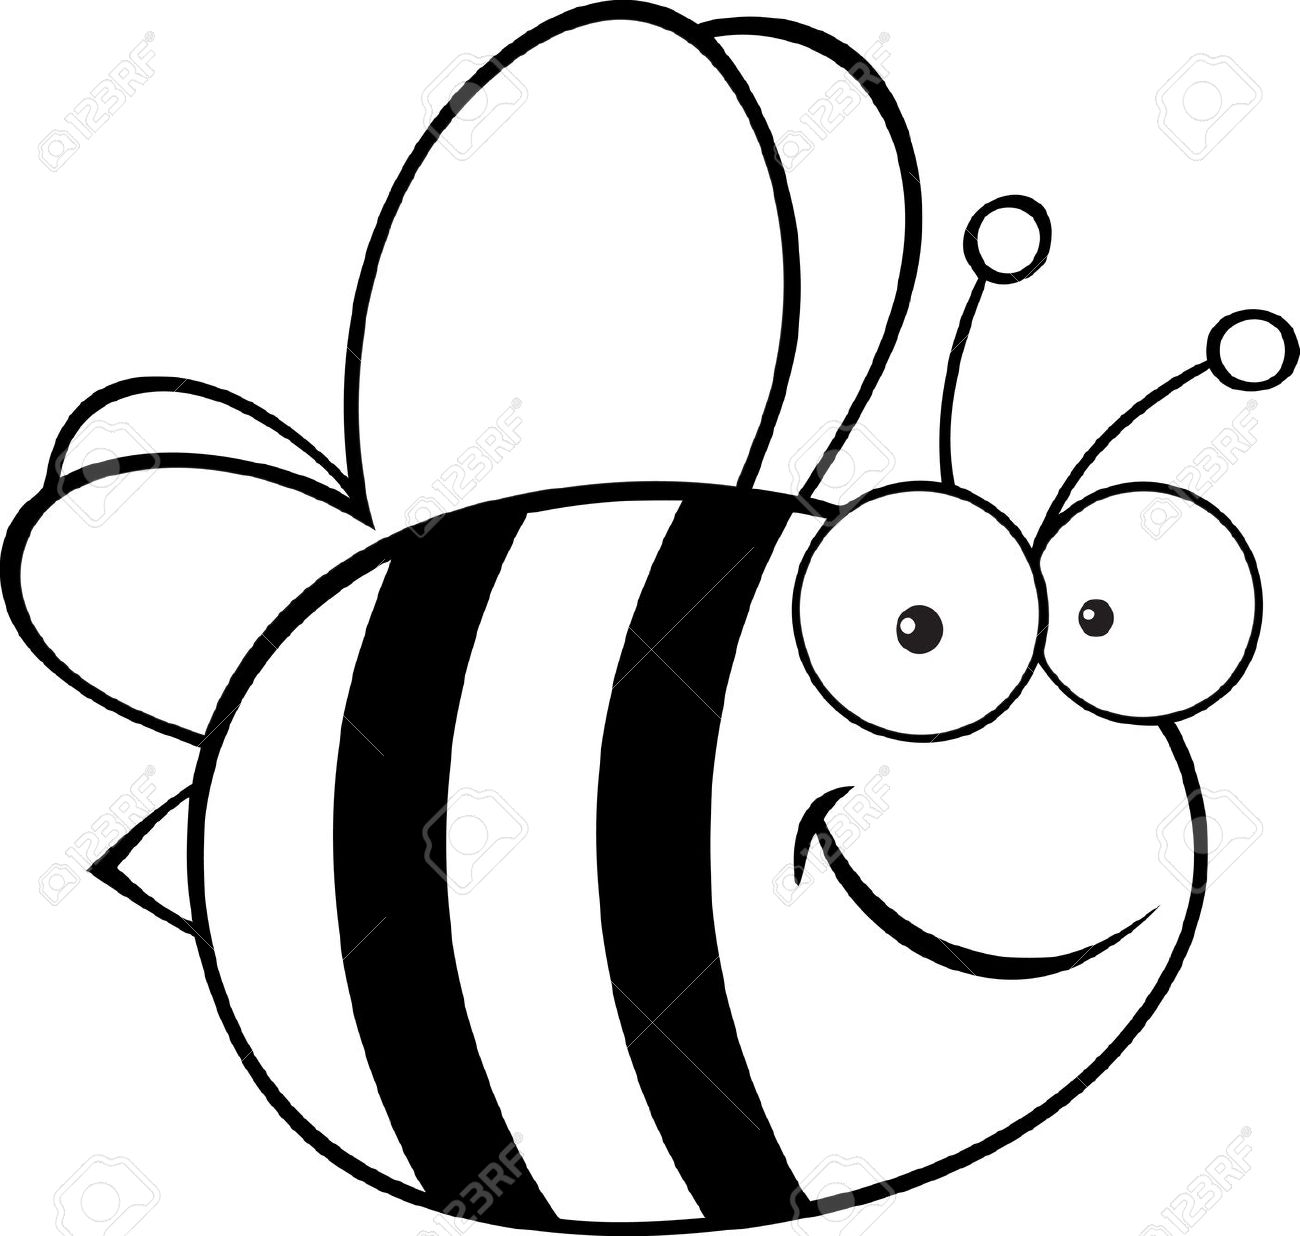 Black And White Bee Clipart. Outlined Cute Cartoon Bee .